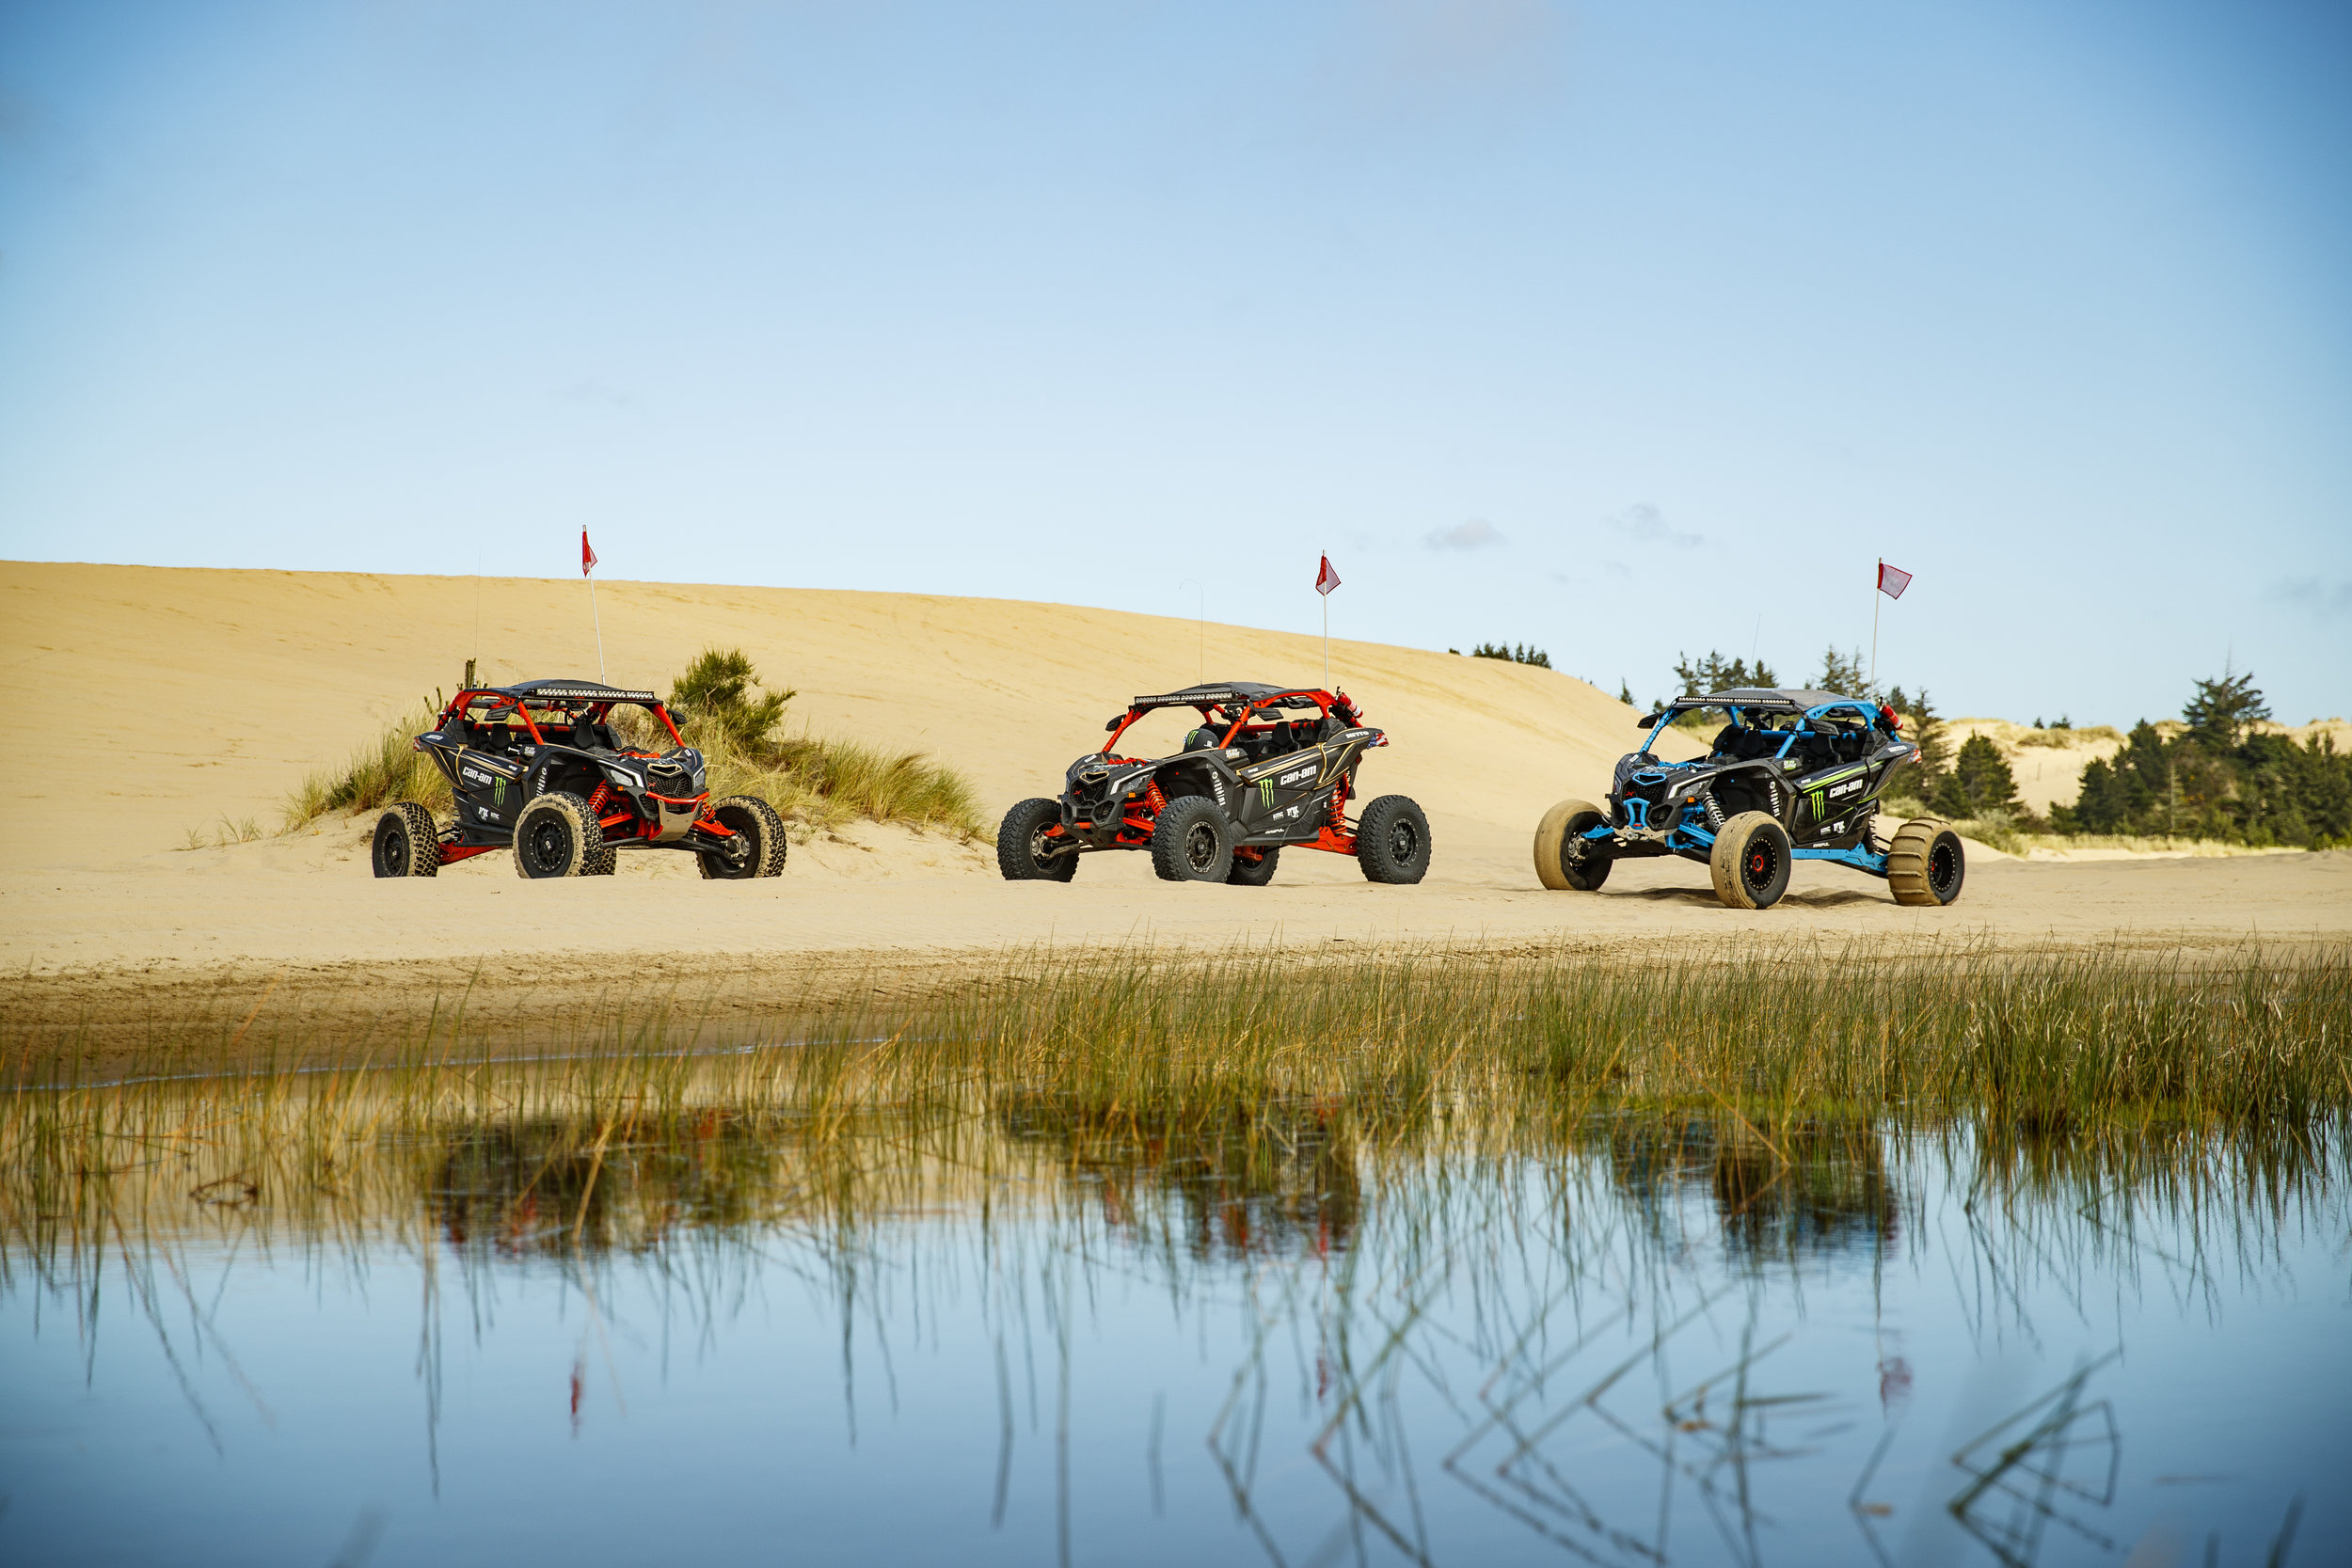 6_29_CaseyCurrie_UTVTakeover_CoosBay_Oregon_Can-Am_007.jpg